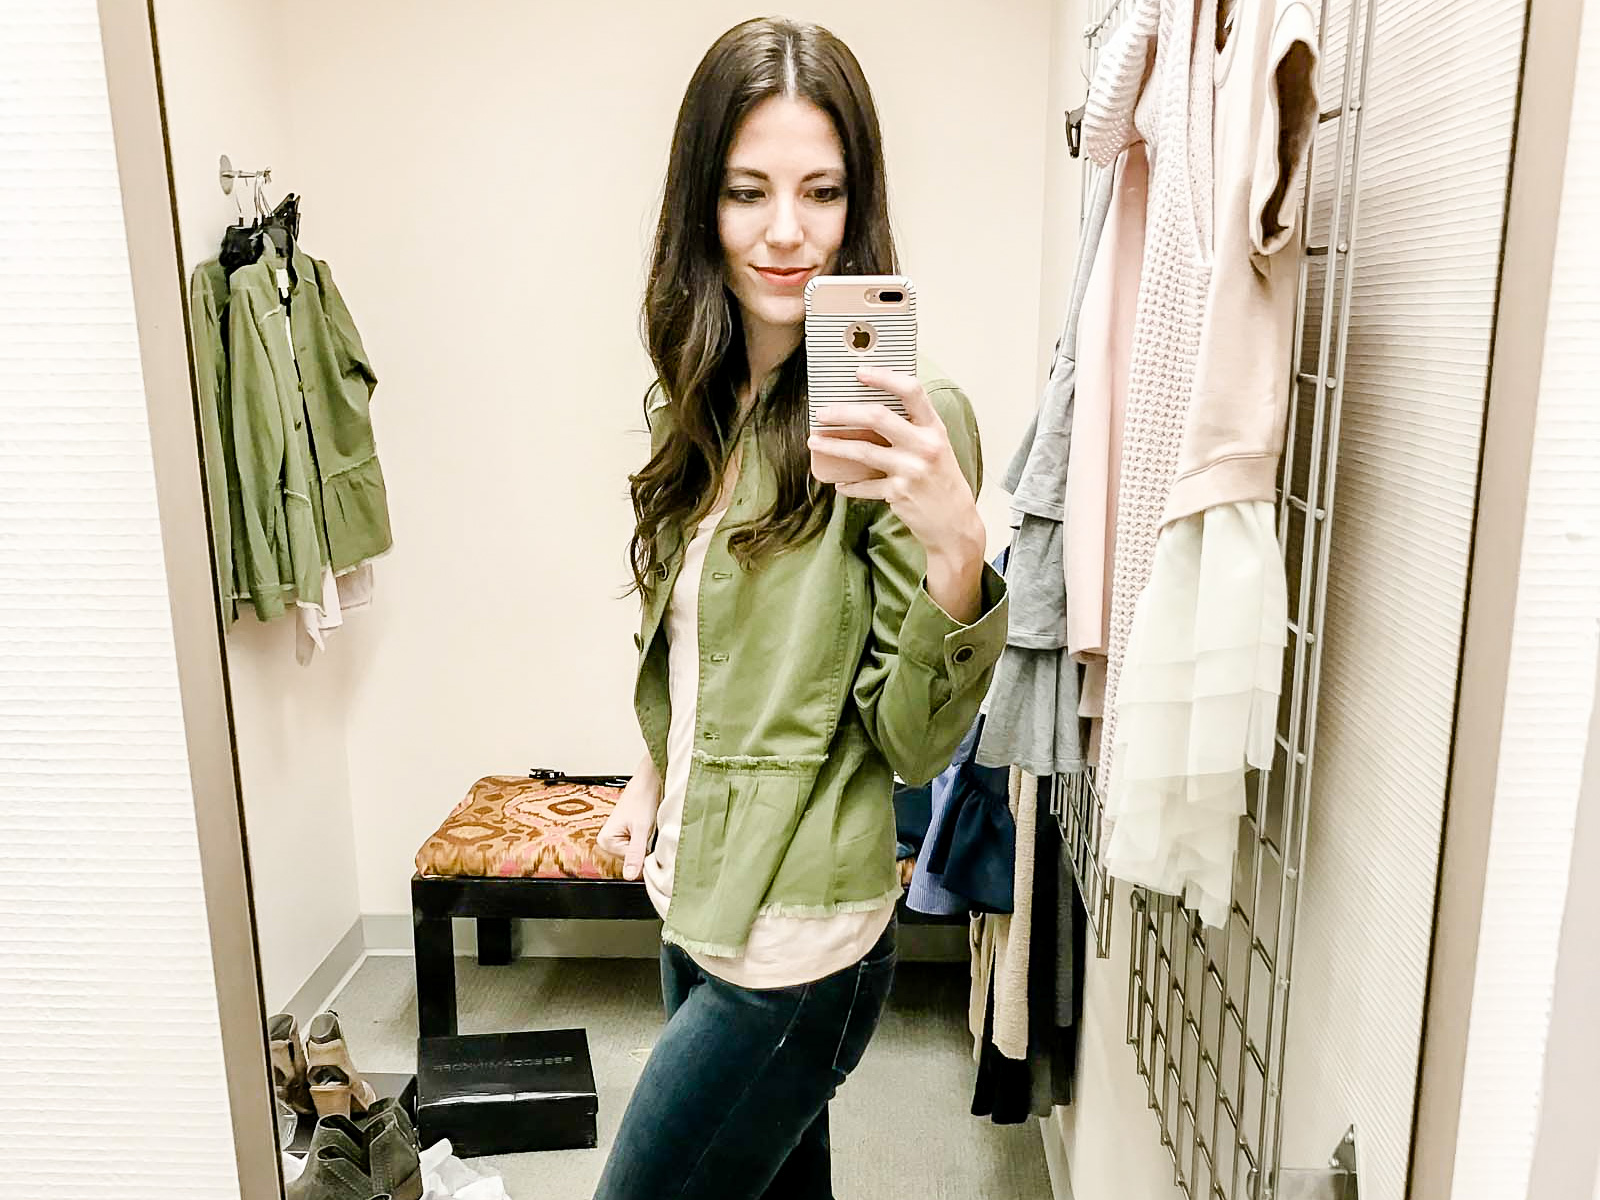 nordstrom sale   Nordstrom look   outfit ideas from Nordstrom   every day joie by elle bowes